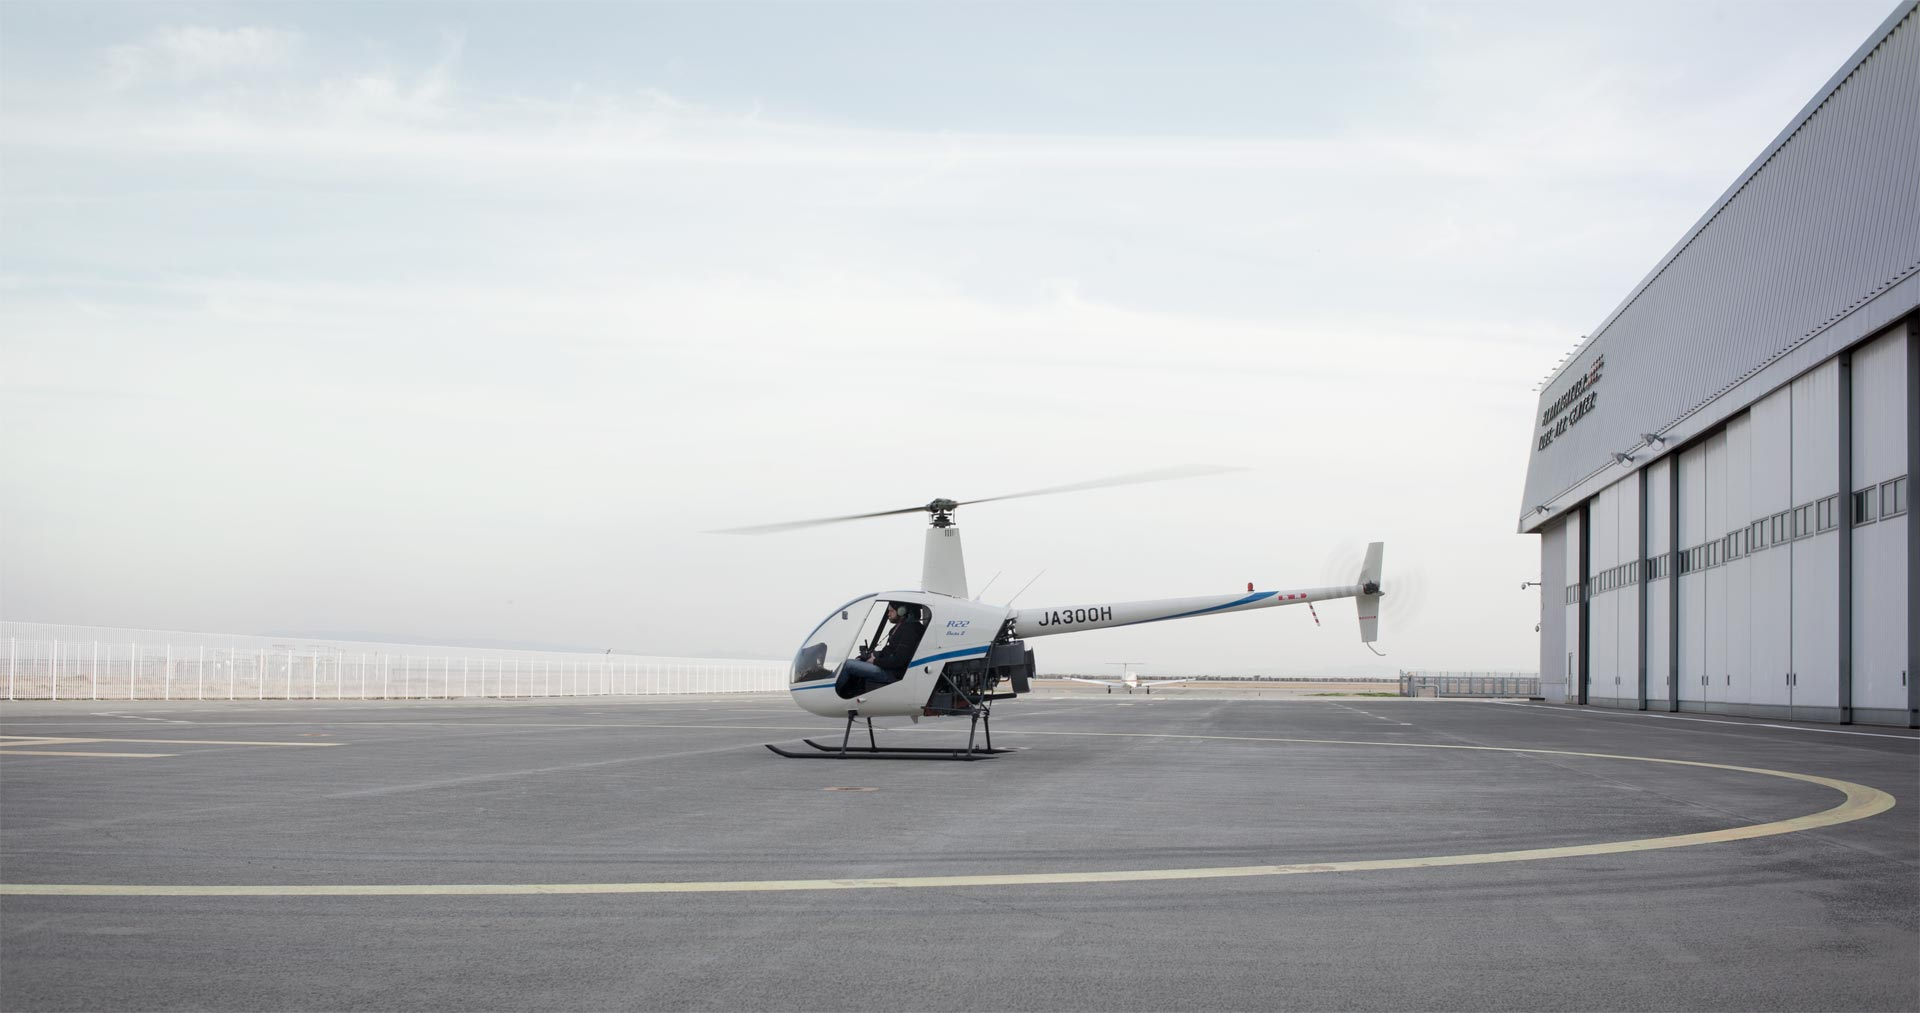 NT-Kobe-Japan-Airport-Helicopter-1